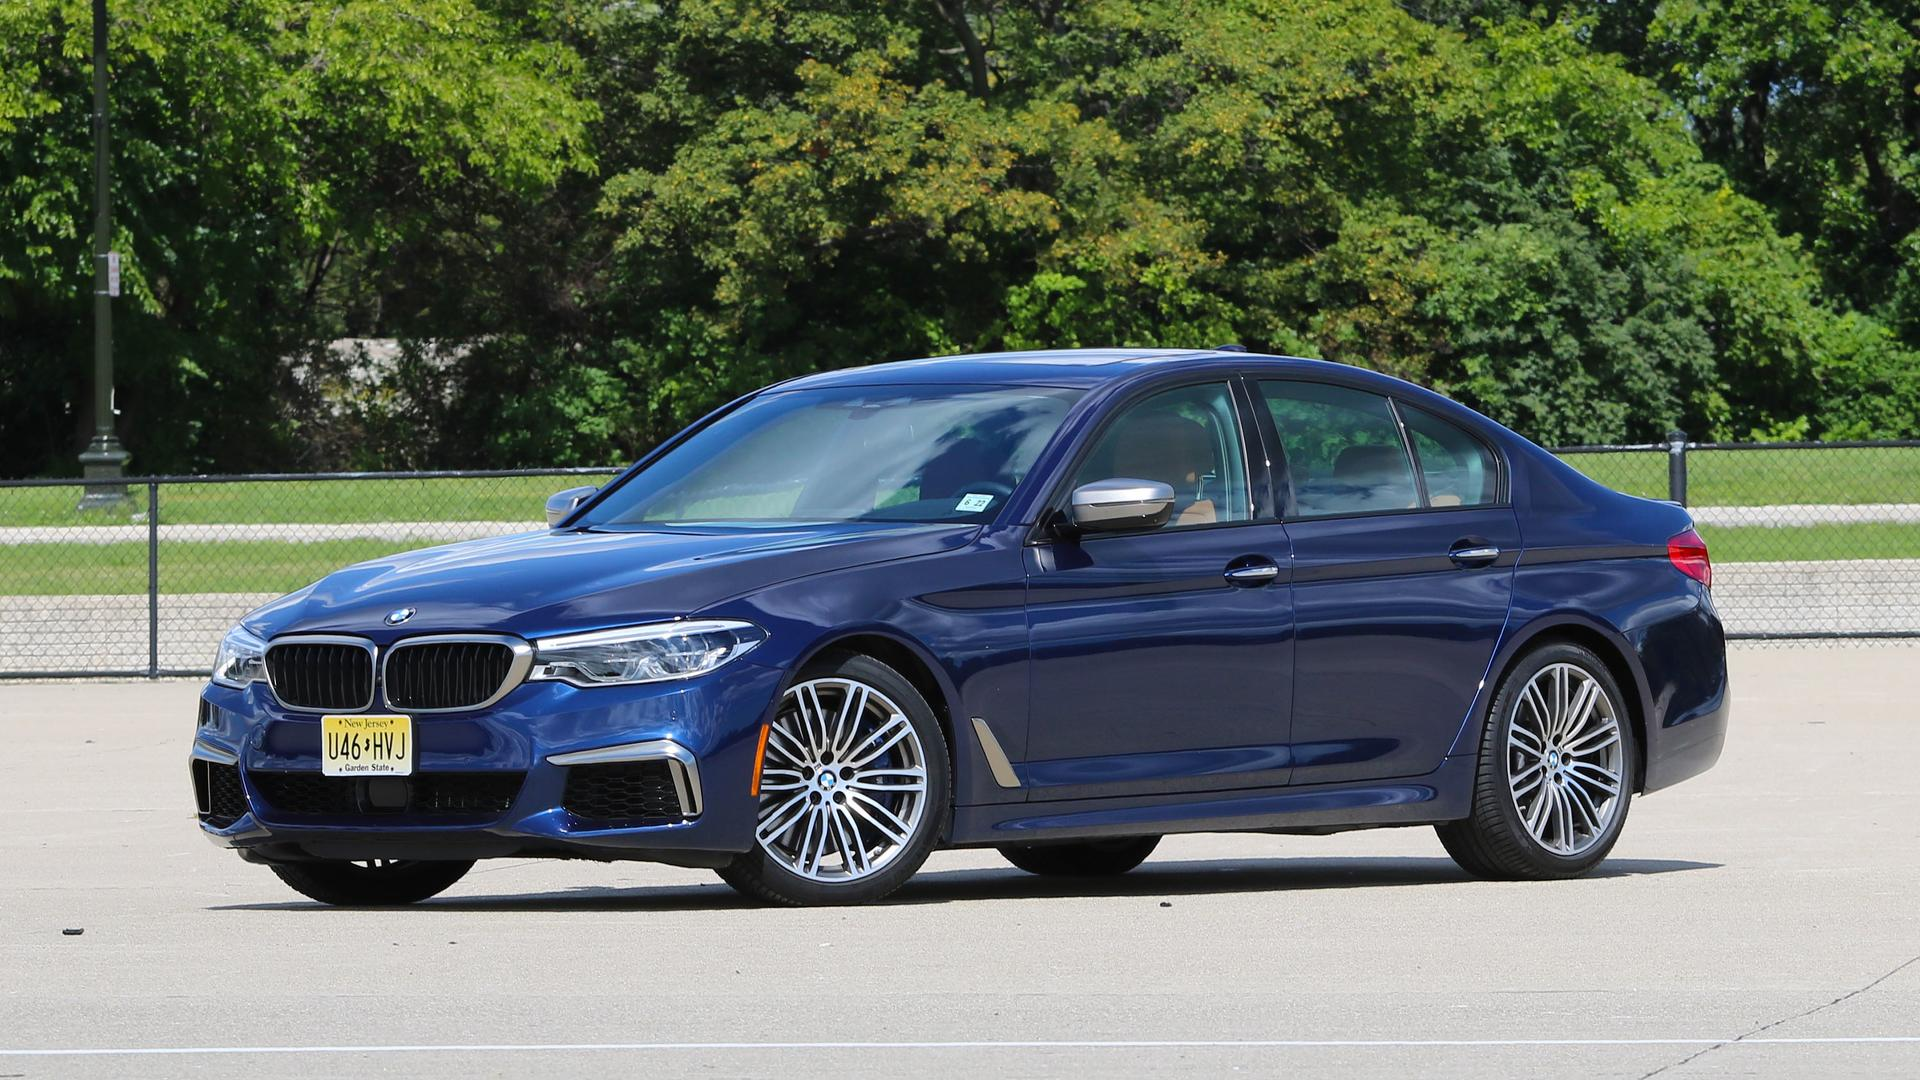 2020 Bmw M550i Xdrive To Have More Power Thanks To 8 Series Engine